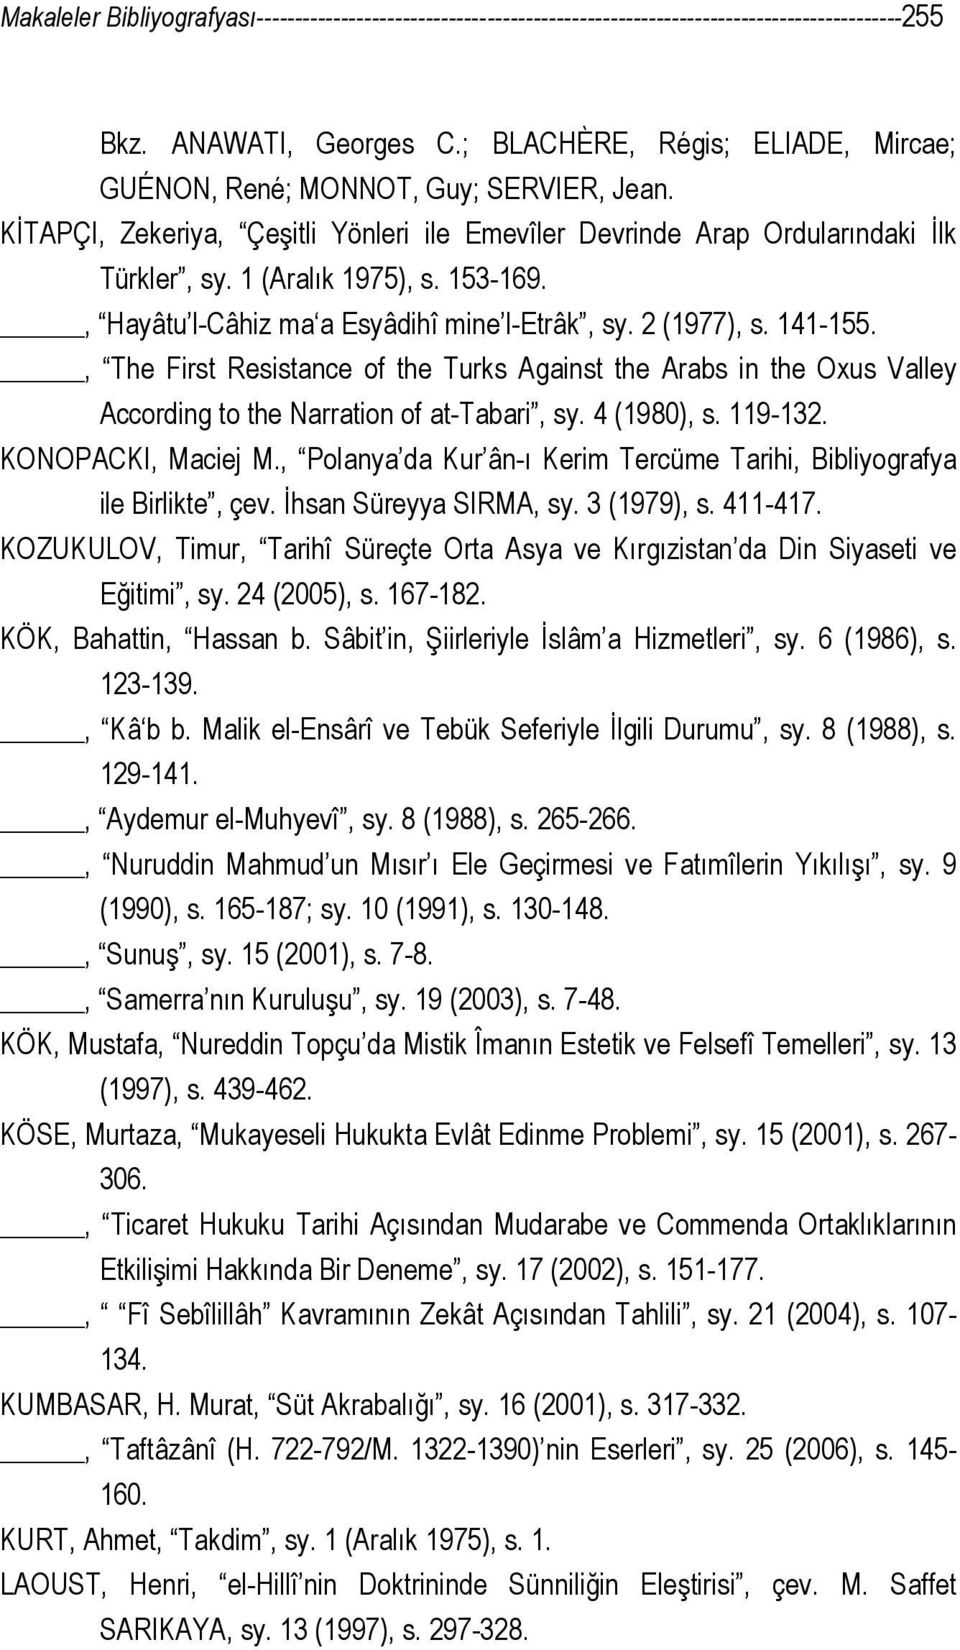 , Hayâtu l-câhiz ma a Esyâdihî mine l-etrâk, sy. 2 (1977), s. 141-155., The First Resistance of the Turks Against the Arabs in the Oxus Valley According to the Narration of at-tabari, sy. 4 (1980), s.